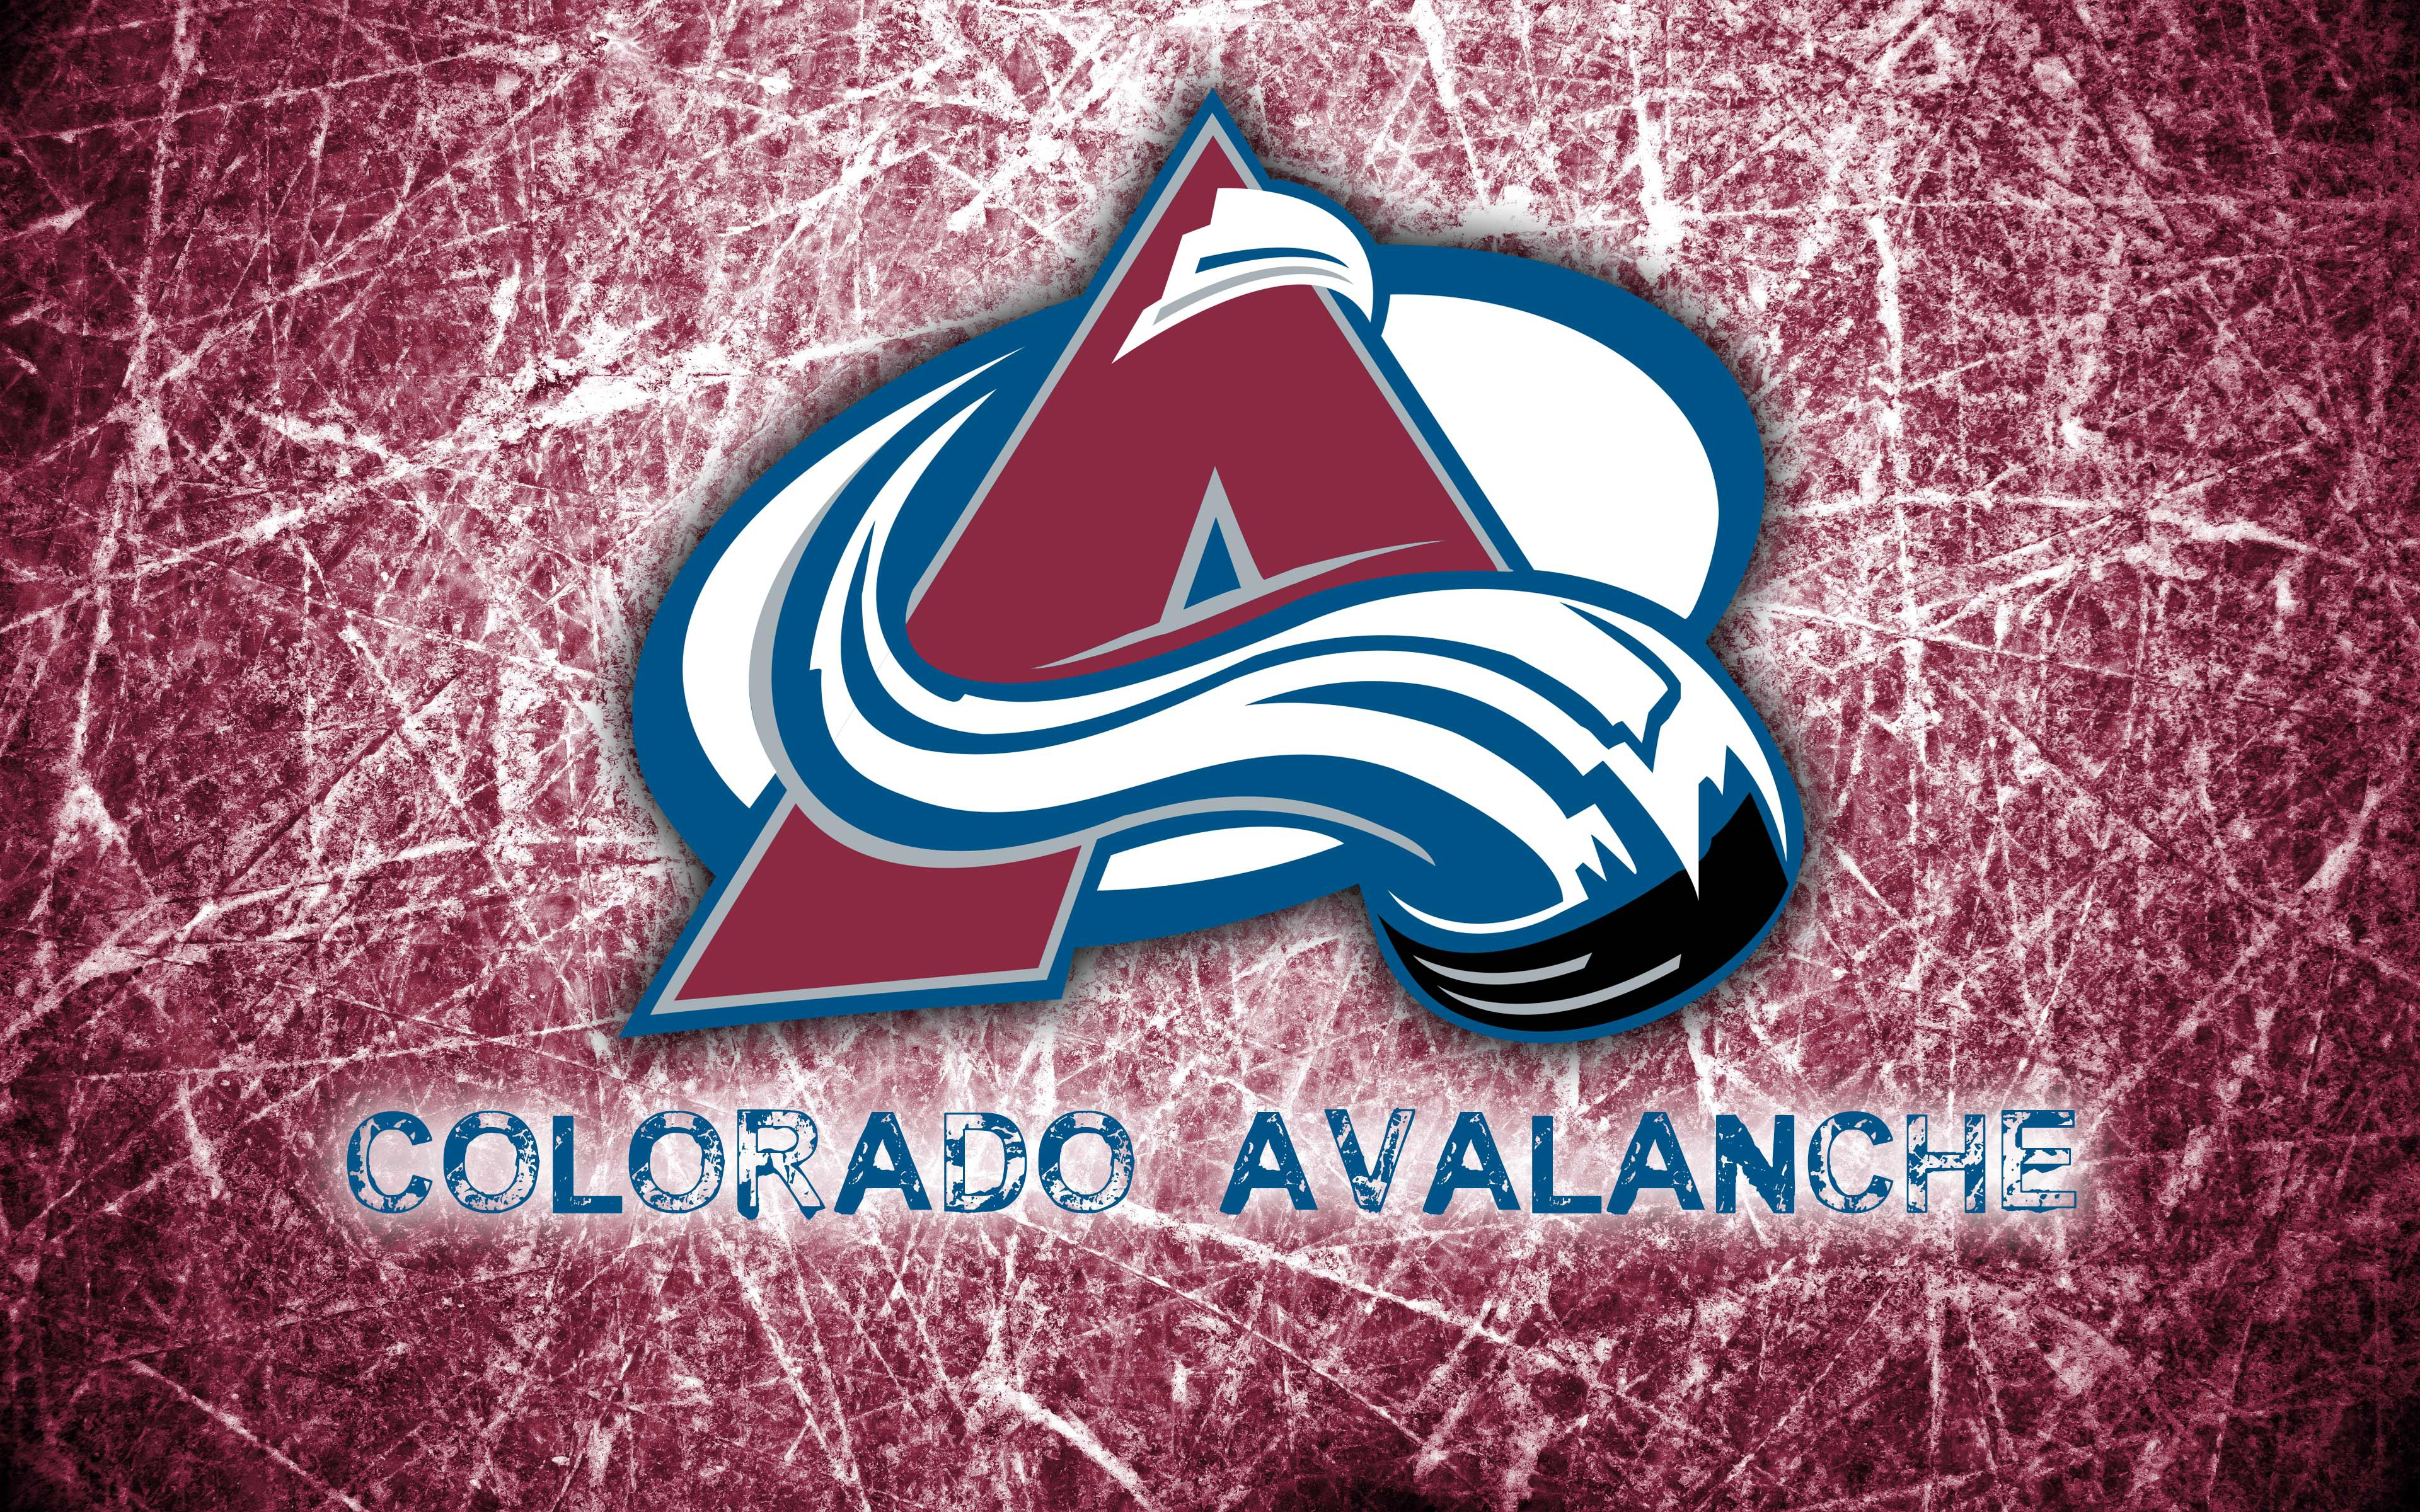 Colorado Avalanche Wallpapers Images Photos Pictures Backgrounds 3840x2400